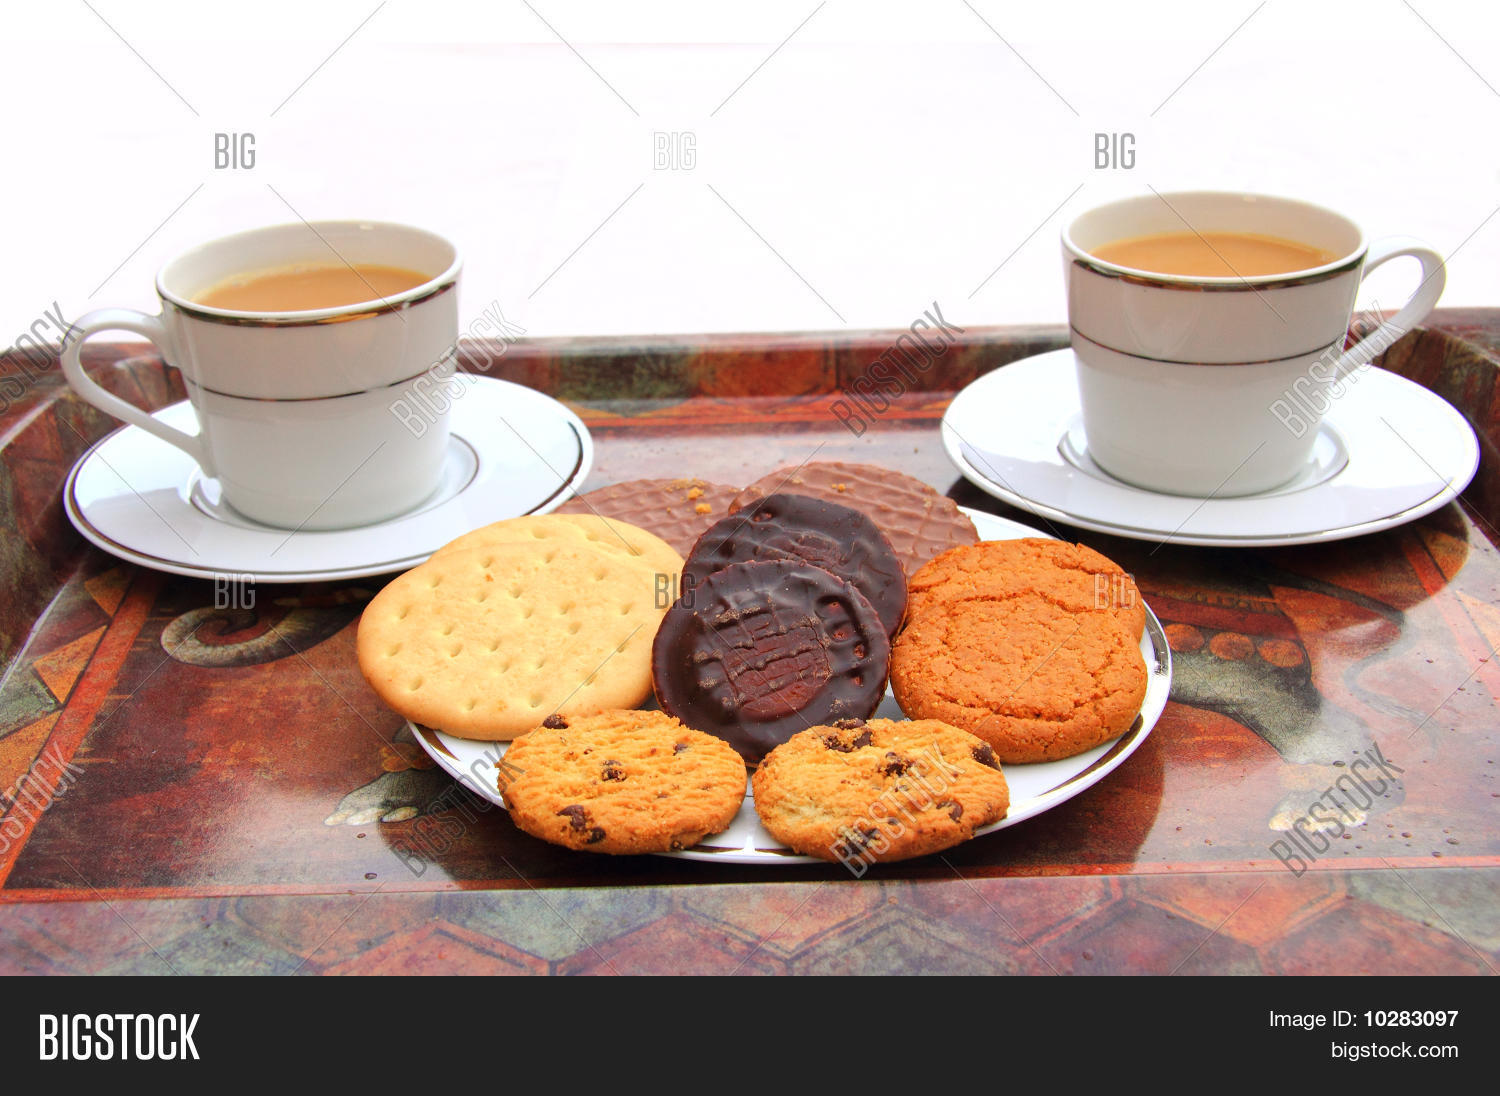 Two Cups of Tea with Biscuits Stock Photo & Stock Images